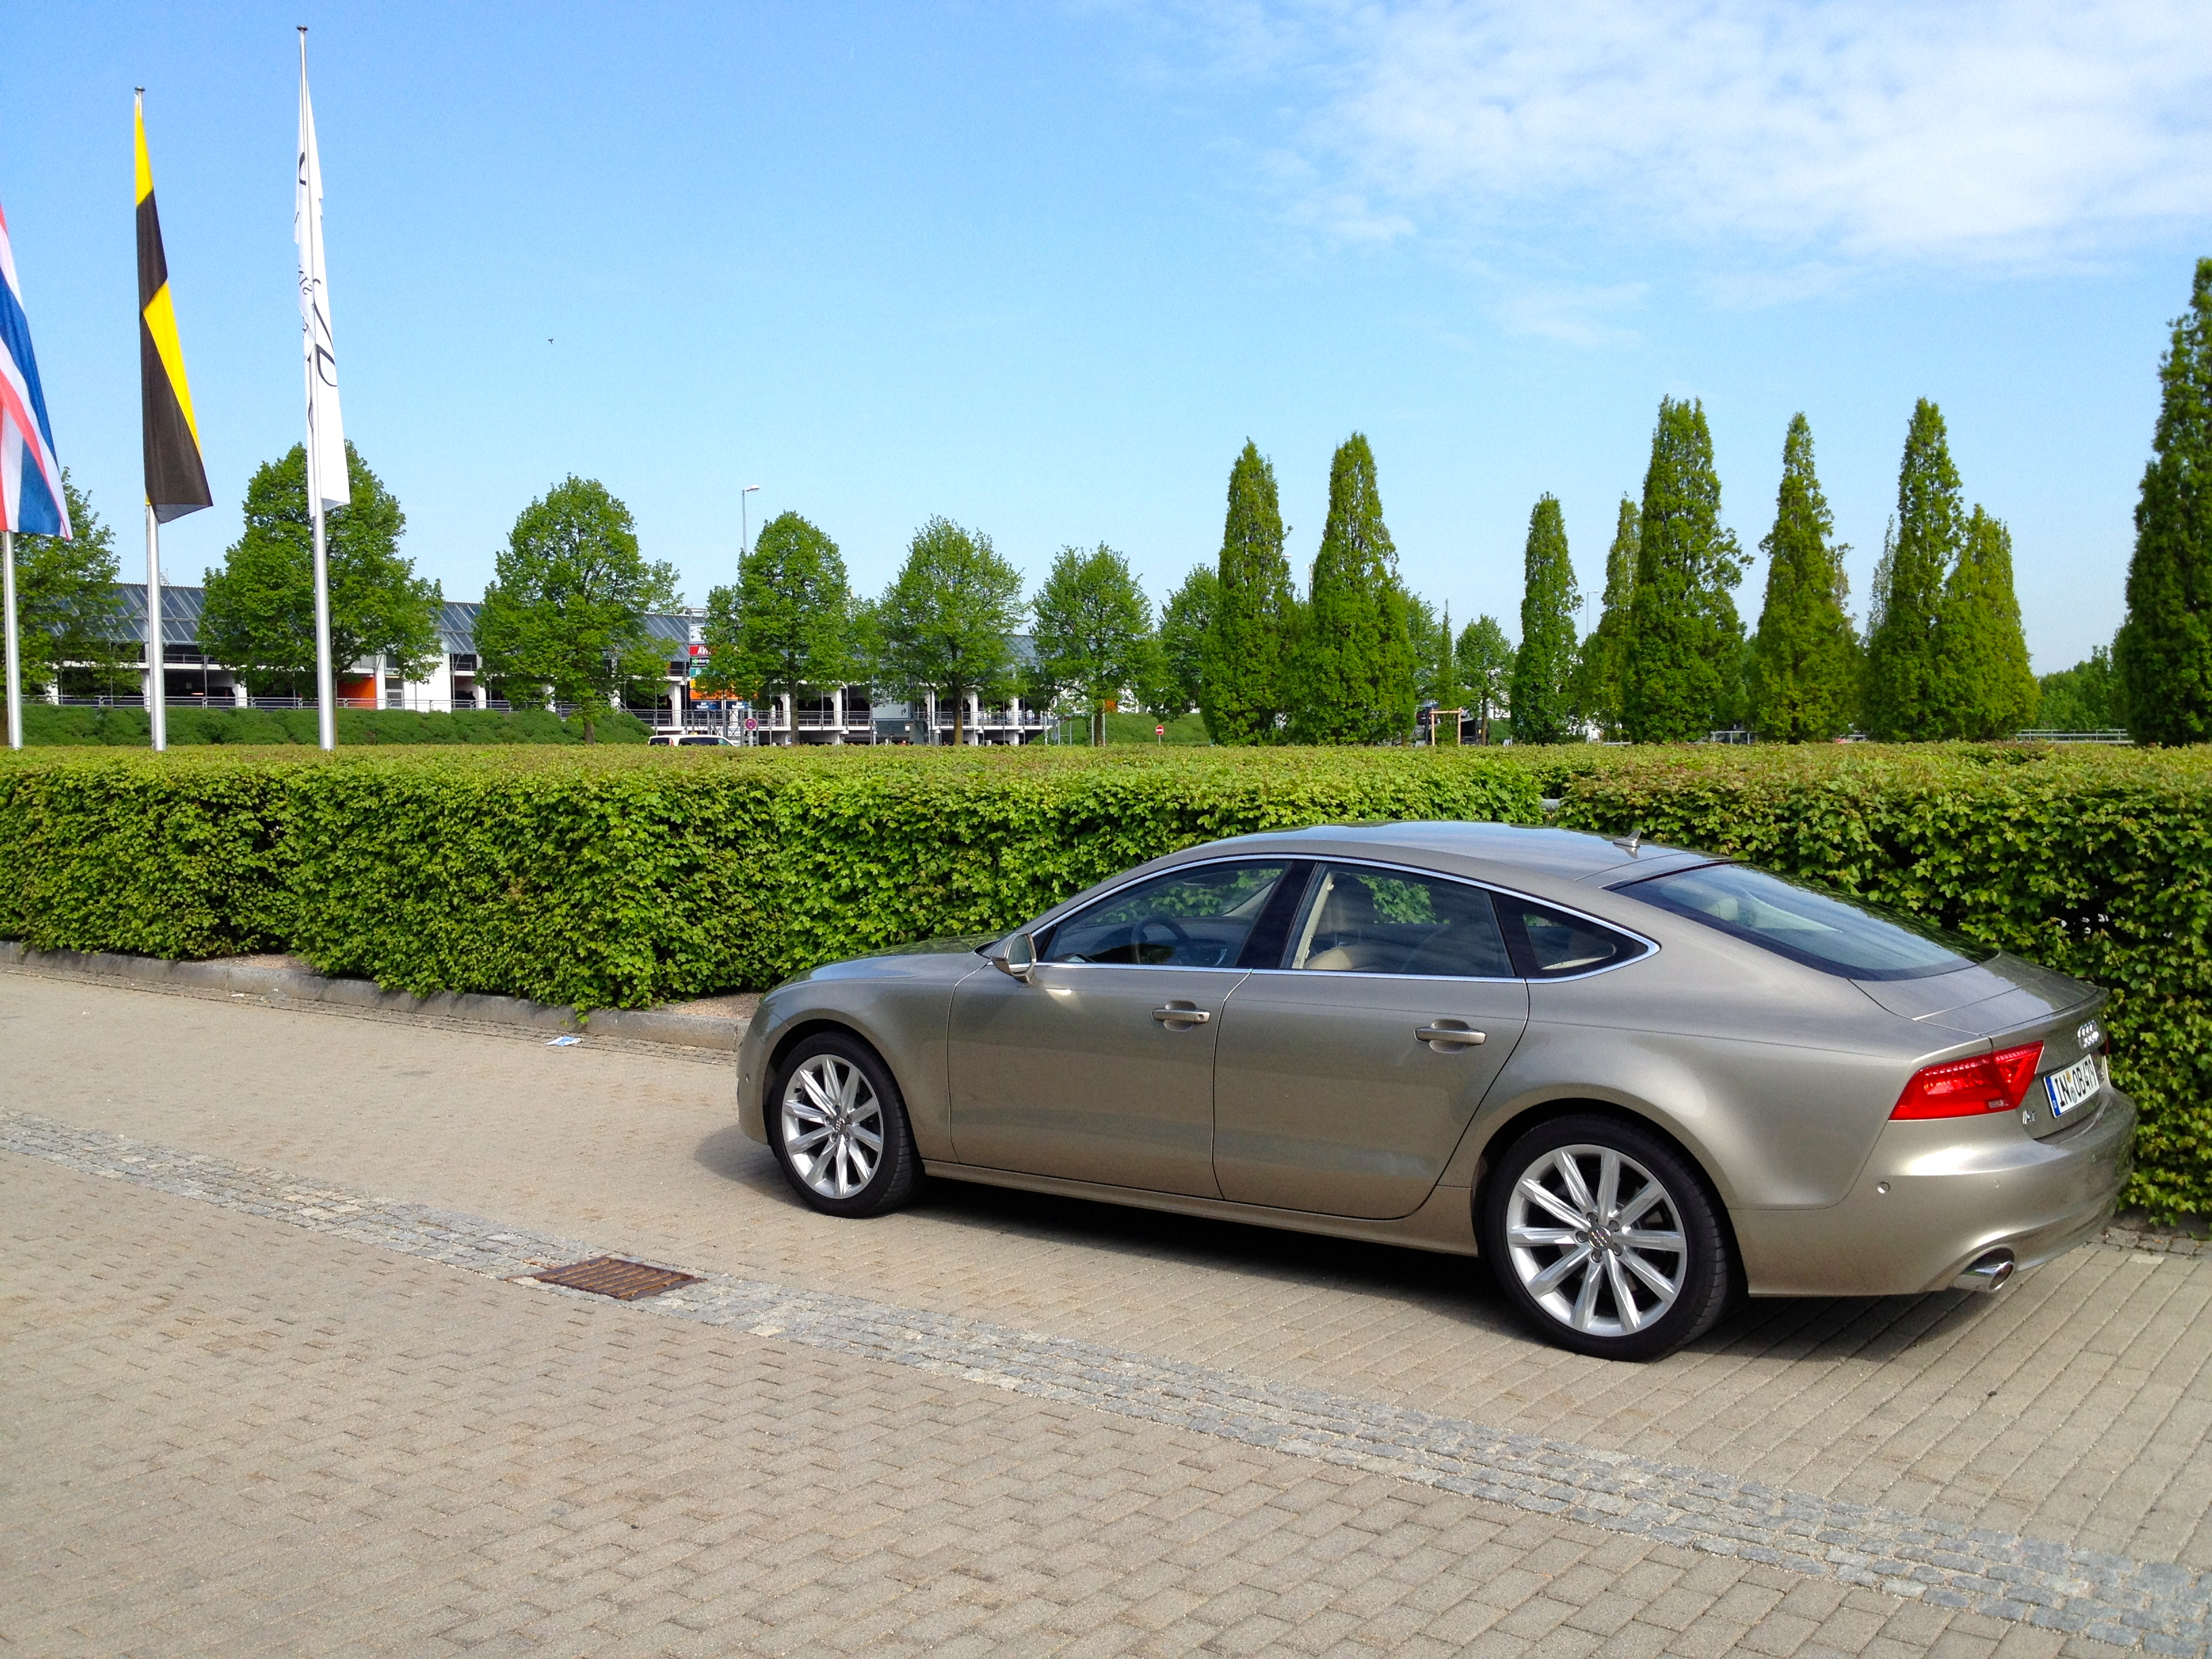 2013 audi a7 3 0 tdi review and road test the green. Black Bedroom Furniture Sets. Home Design Ideas